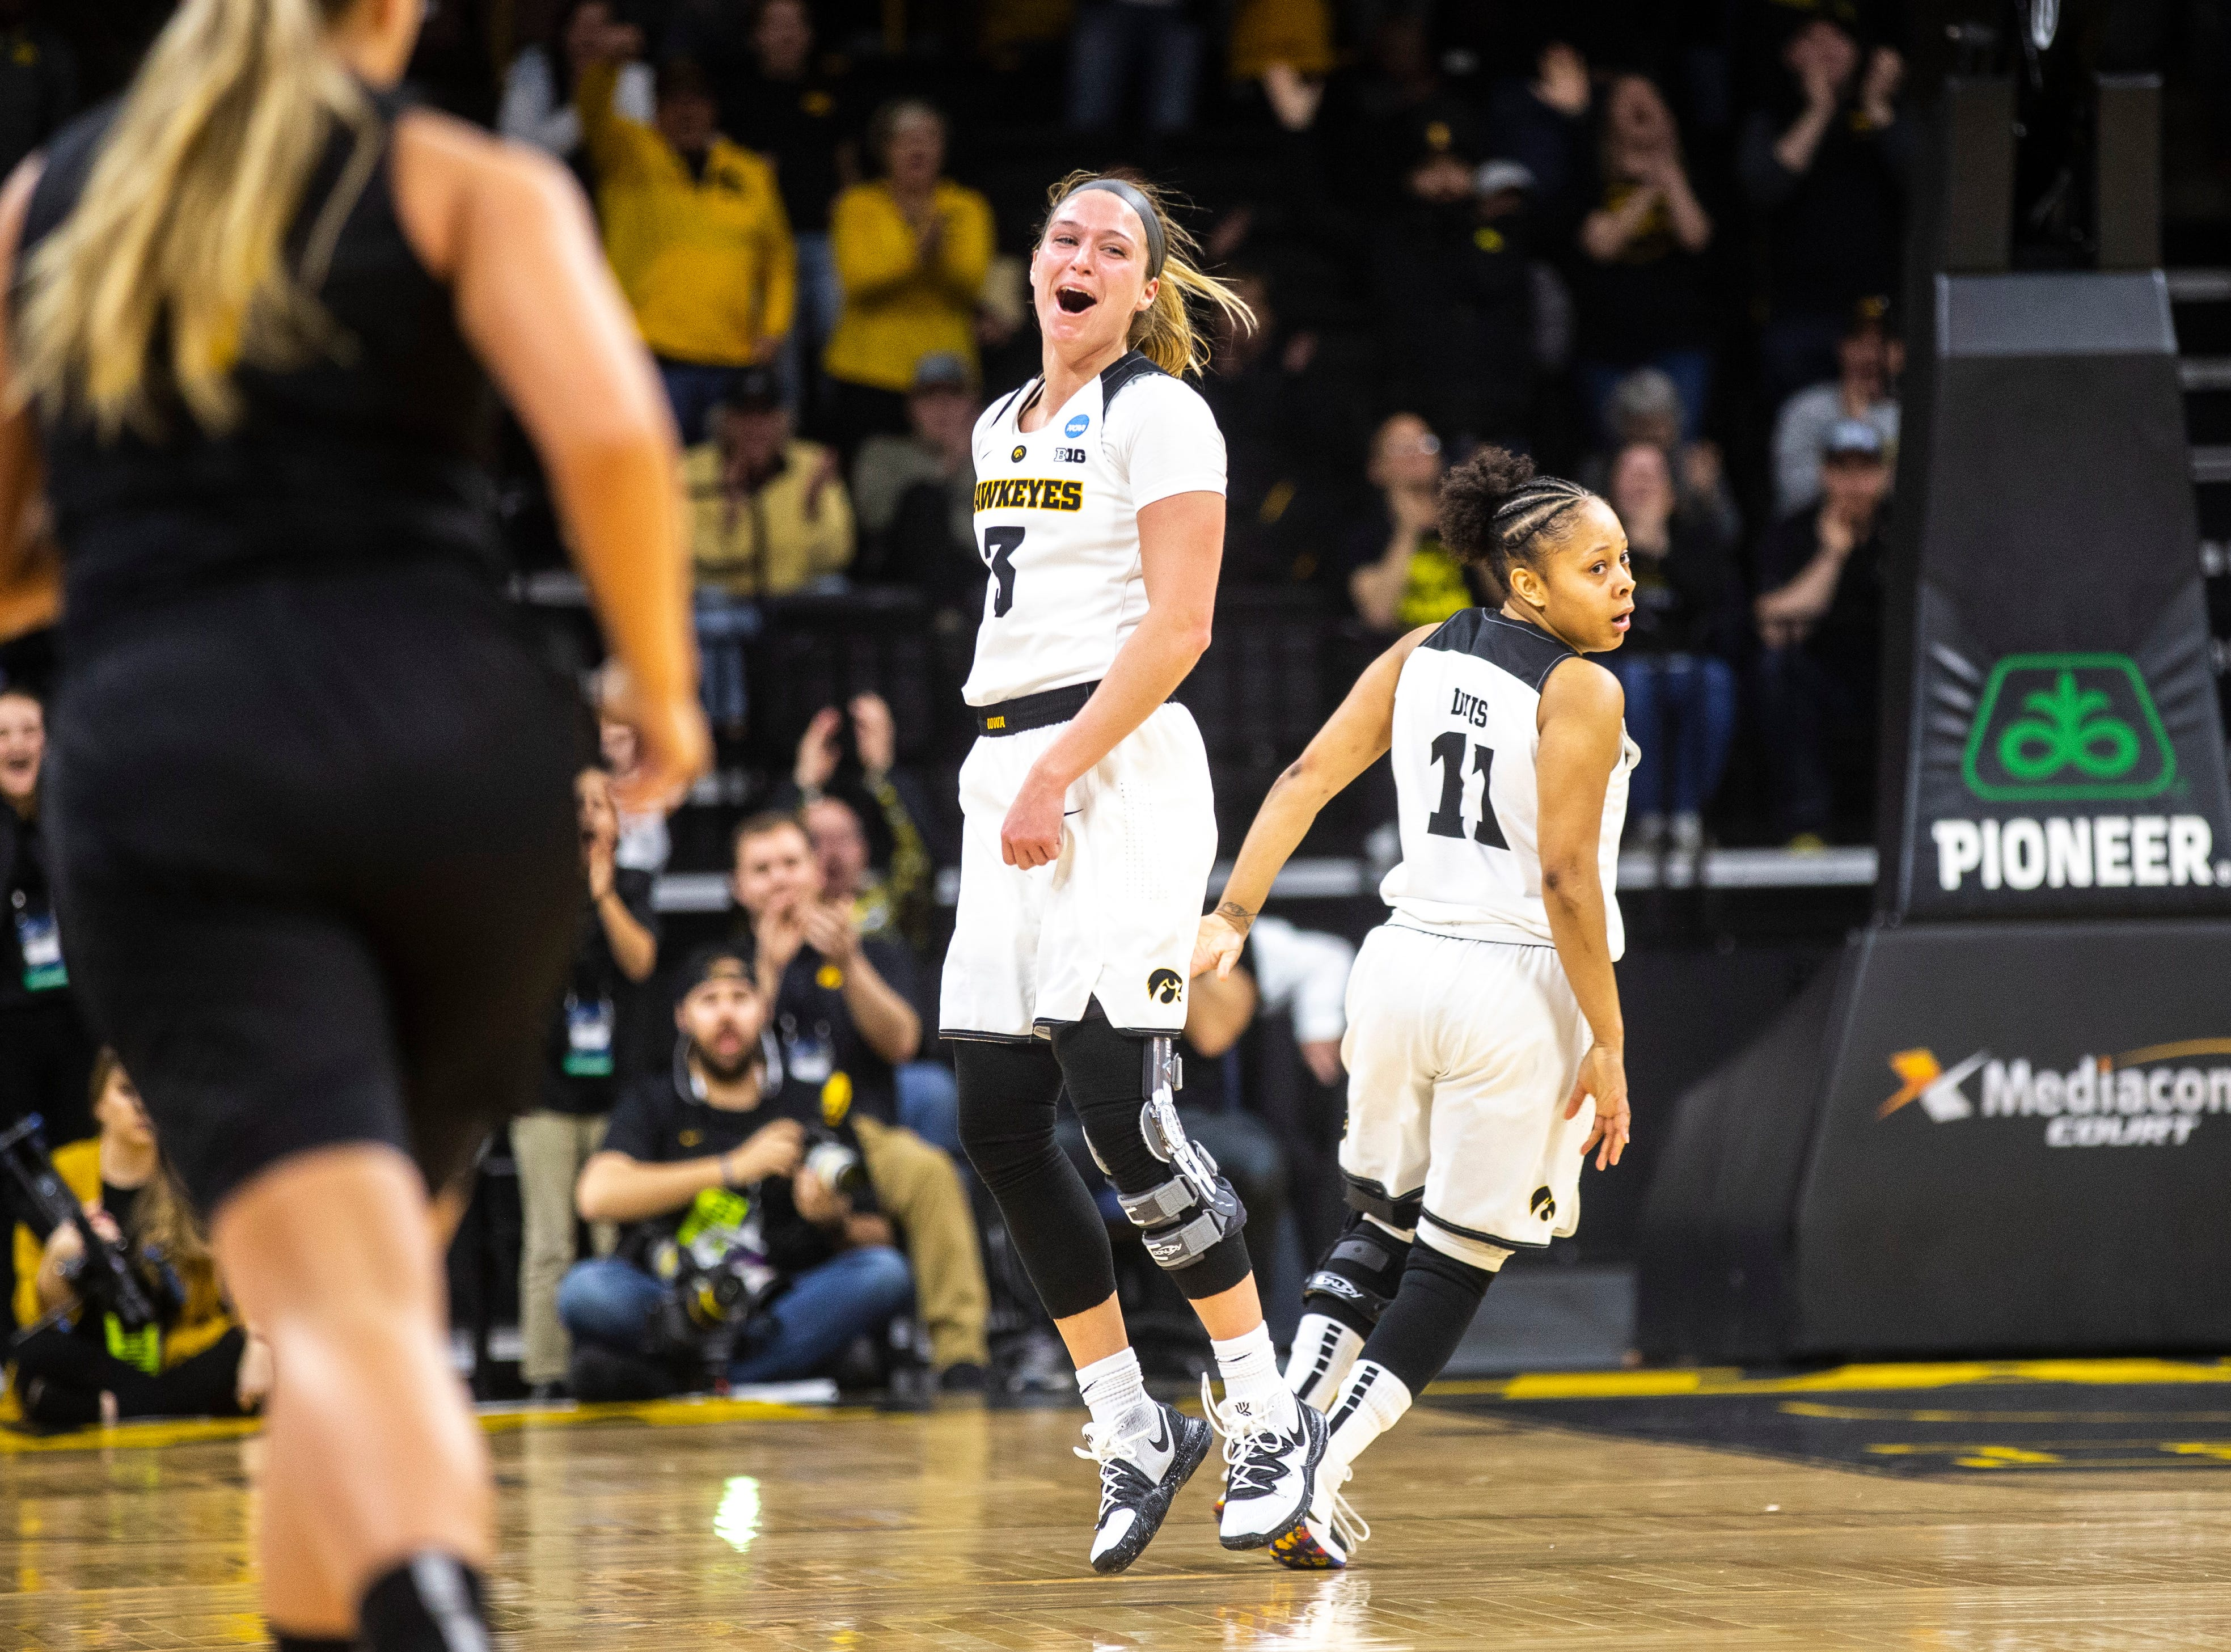 Iowa guard Makenzie Meyer (3) reacts after making a basket while settling in on defense with Iowa guard Tania Davis (11) during a NCAA women's basketball tournament second-round game, Sunday, March 24, 2019, at Carver-Hawkeye Arena in Iowa City, Iowa.